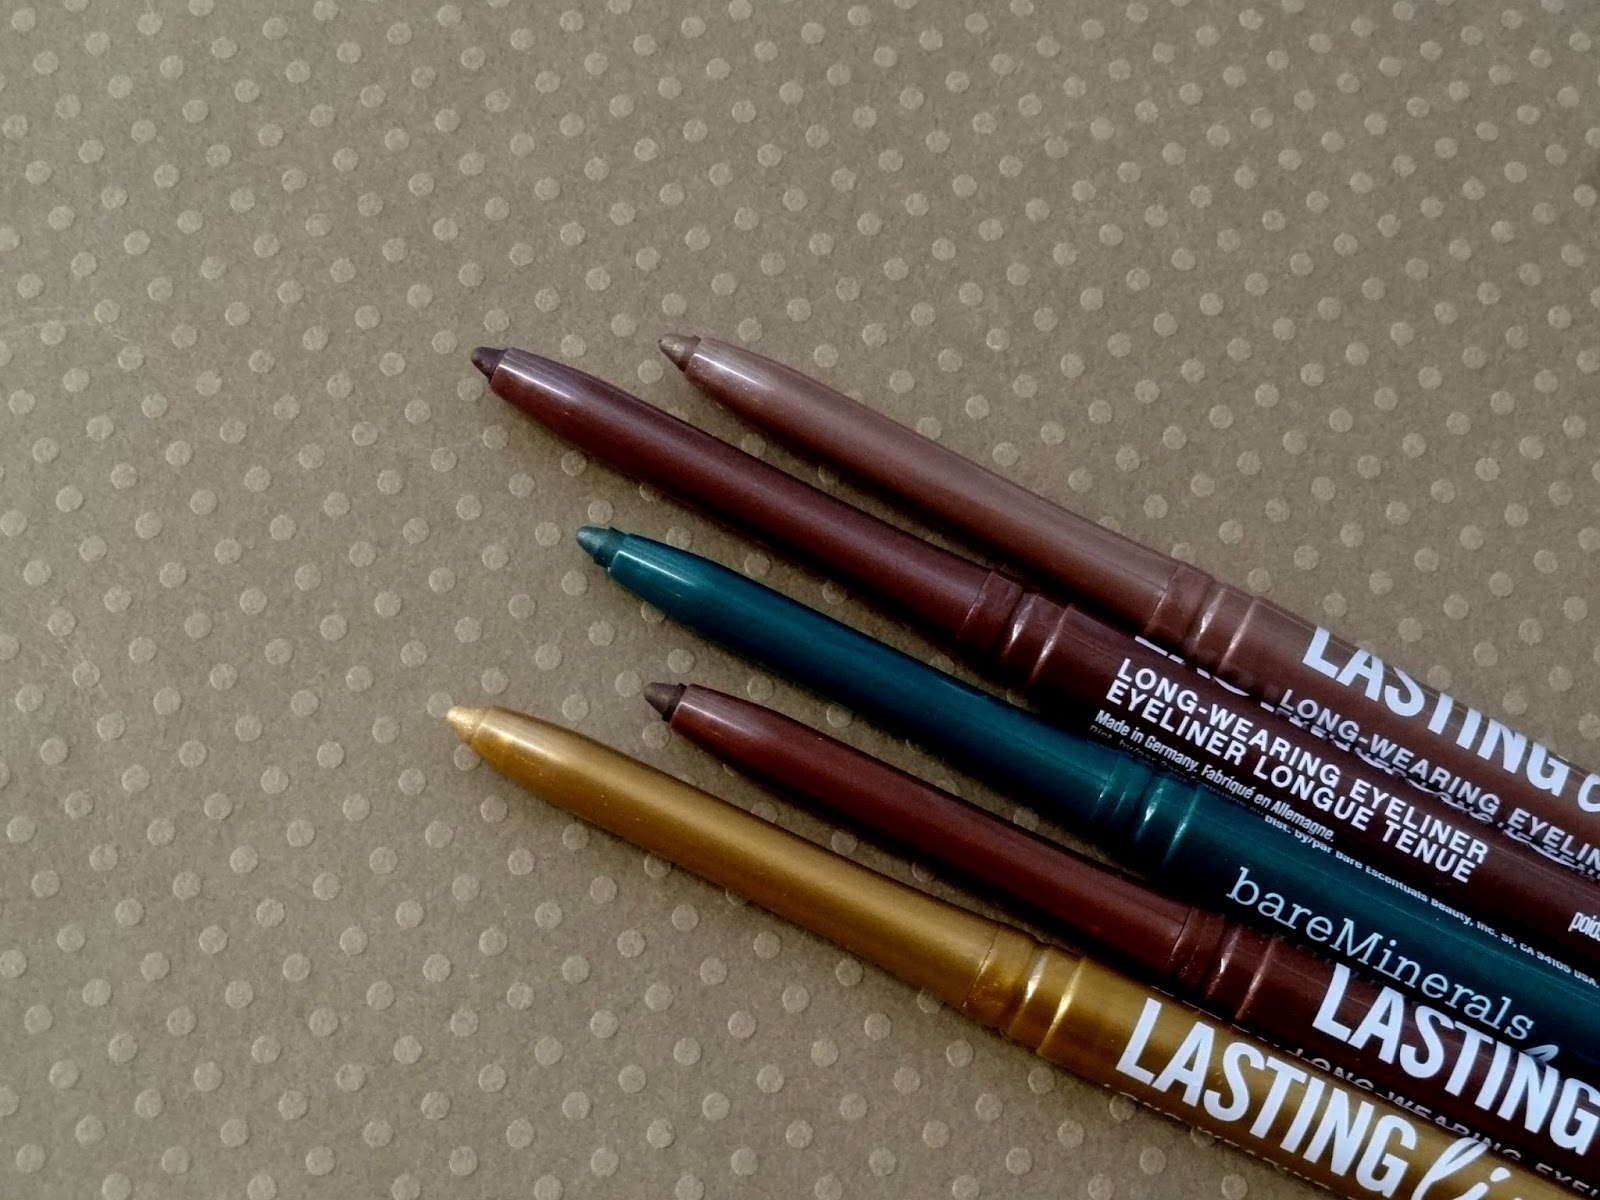 bareminerals afternoon delights lasting line eyeliner set review, photos & swatches